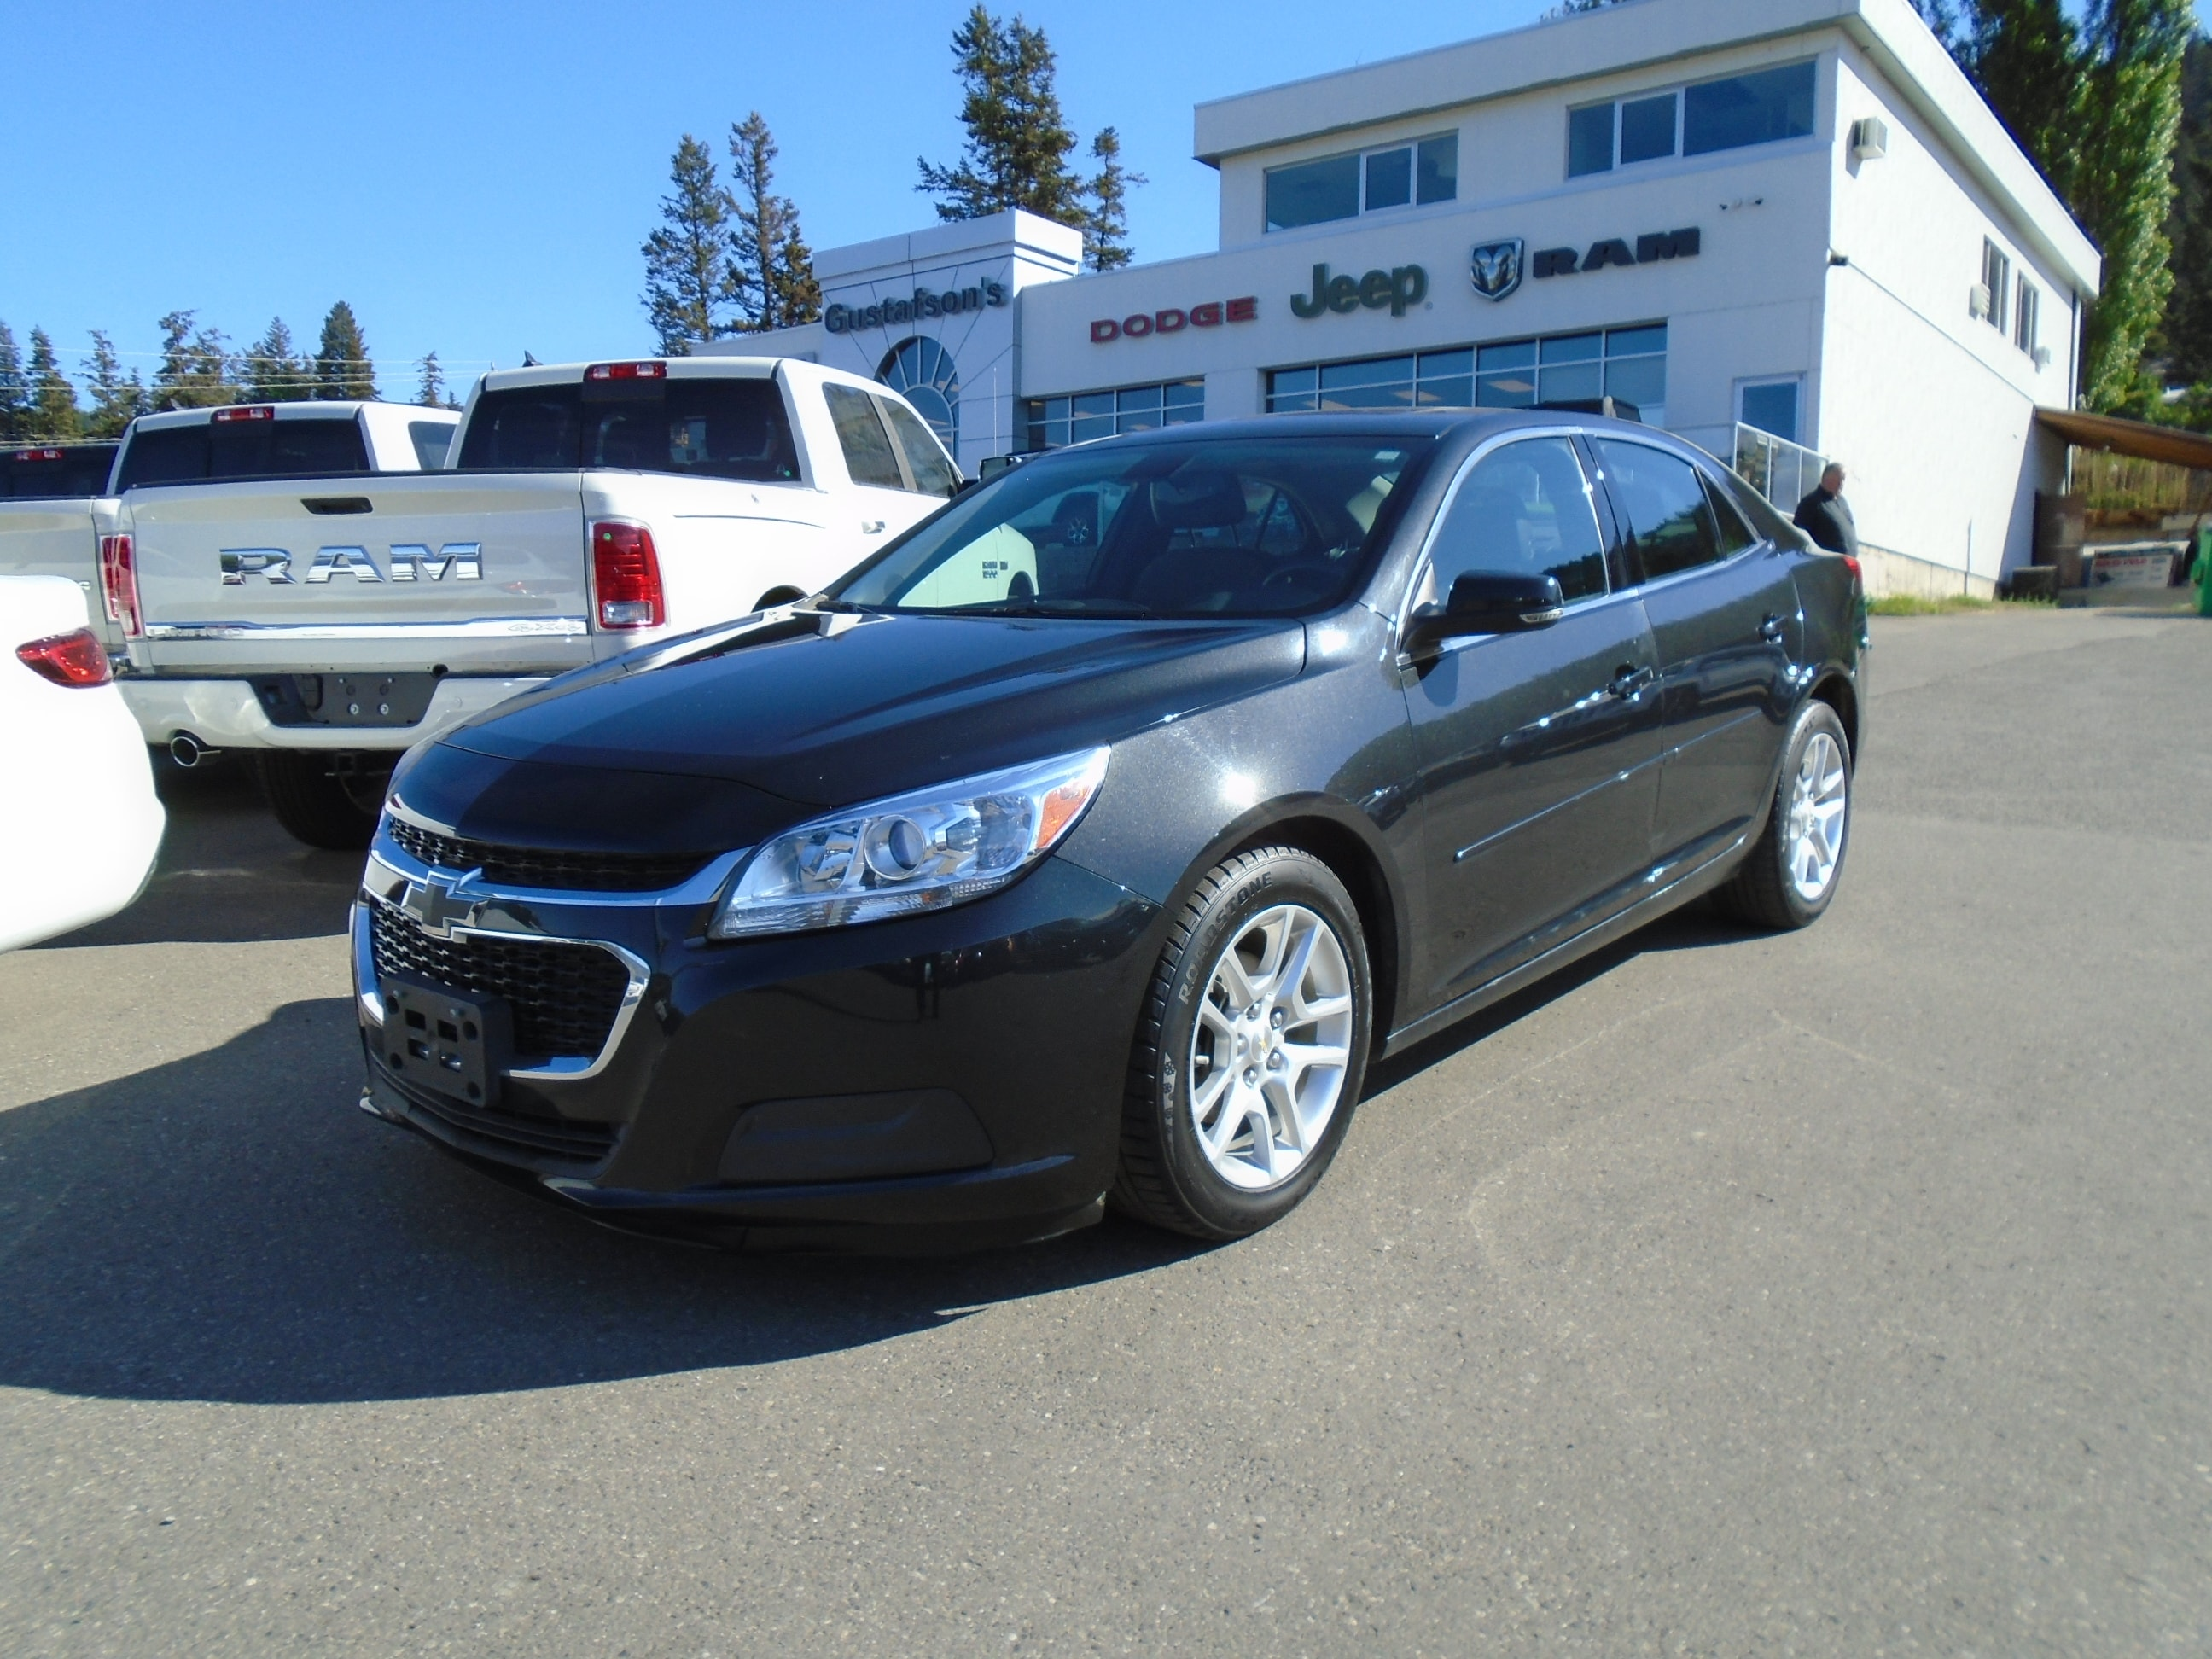 Check Out This Used 2015 Chevrolet Malibu 1LT For Sale in Williams